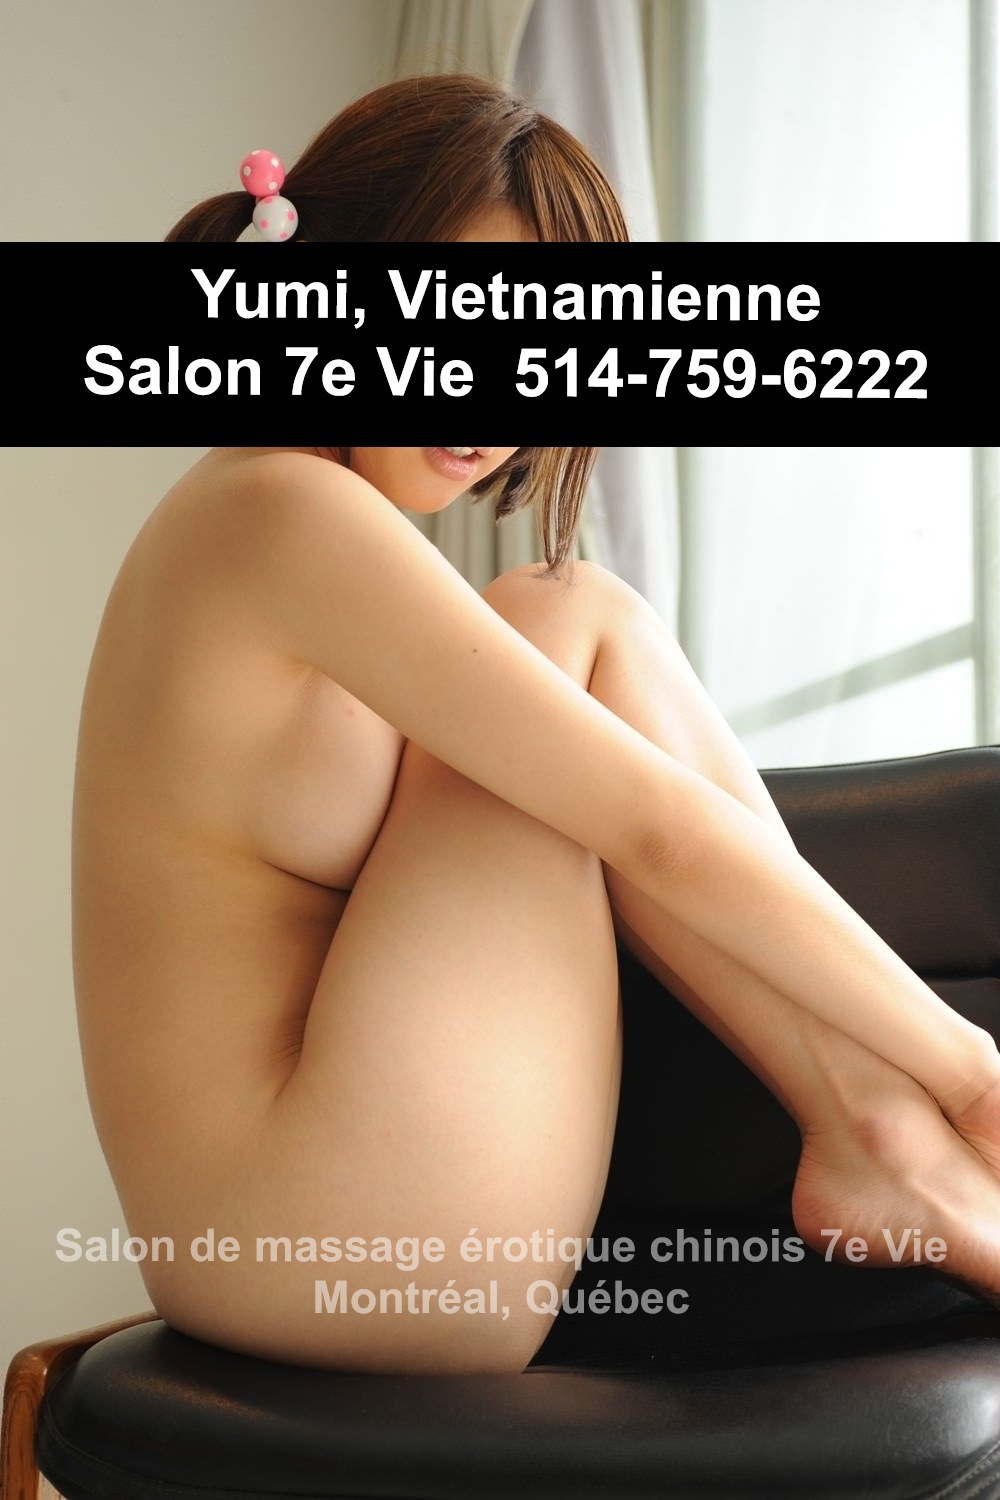 videos massage erotique Saint-Laurent-du-Maroni